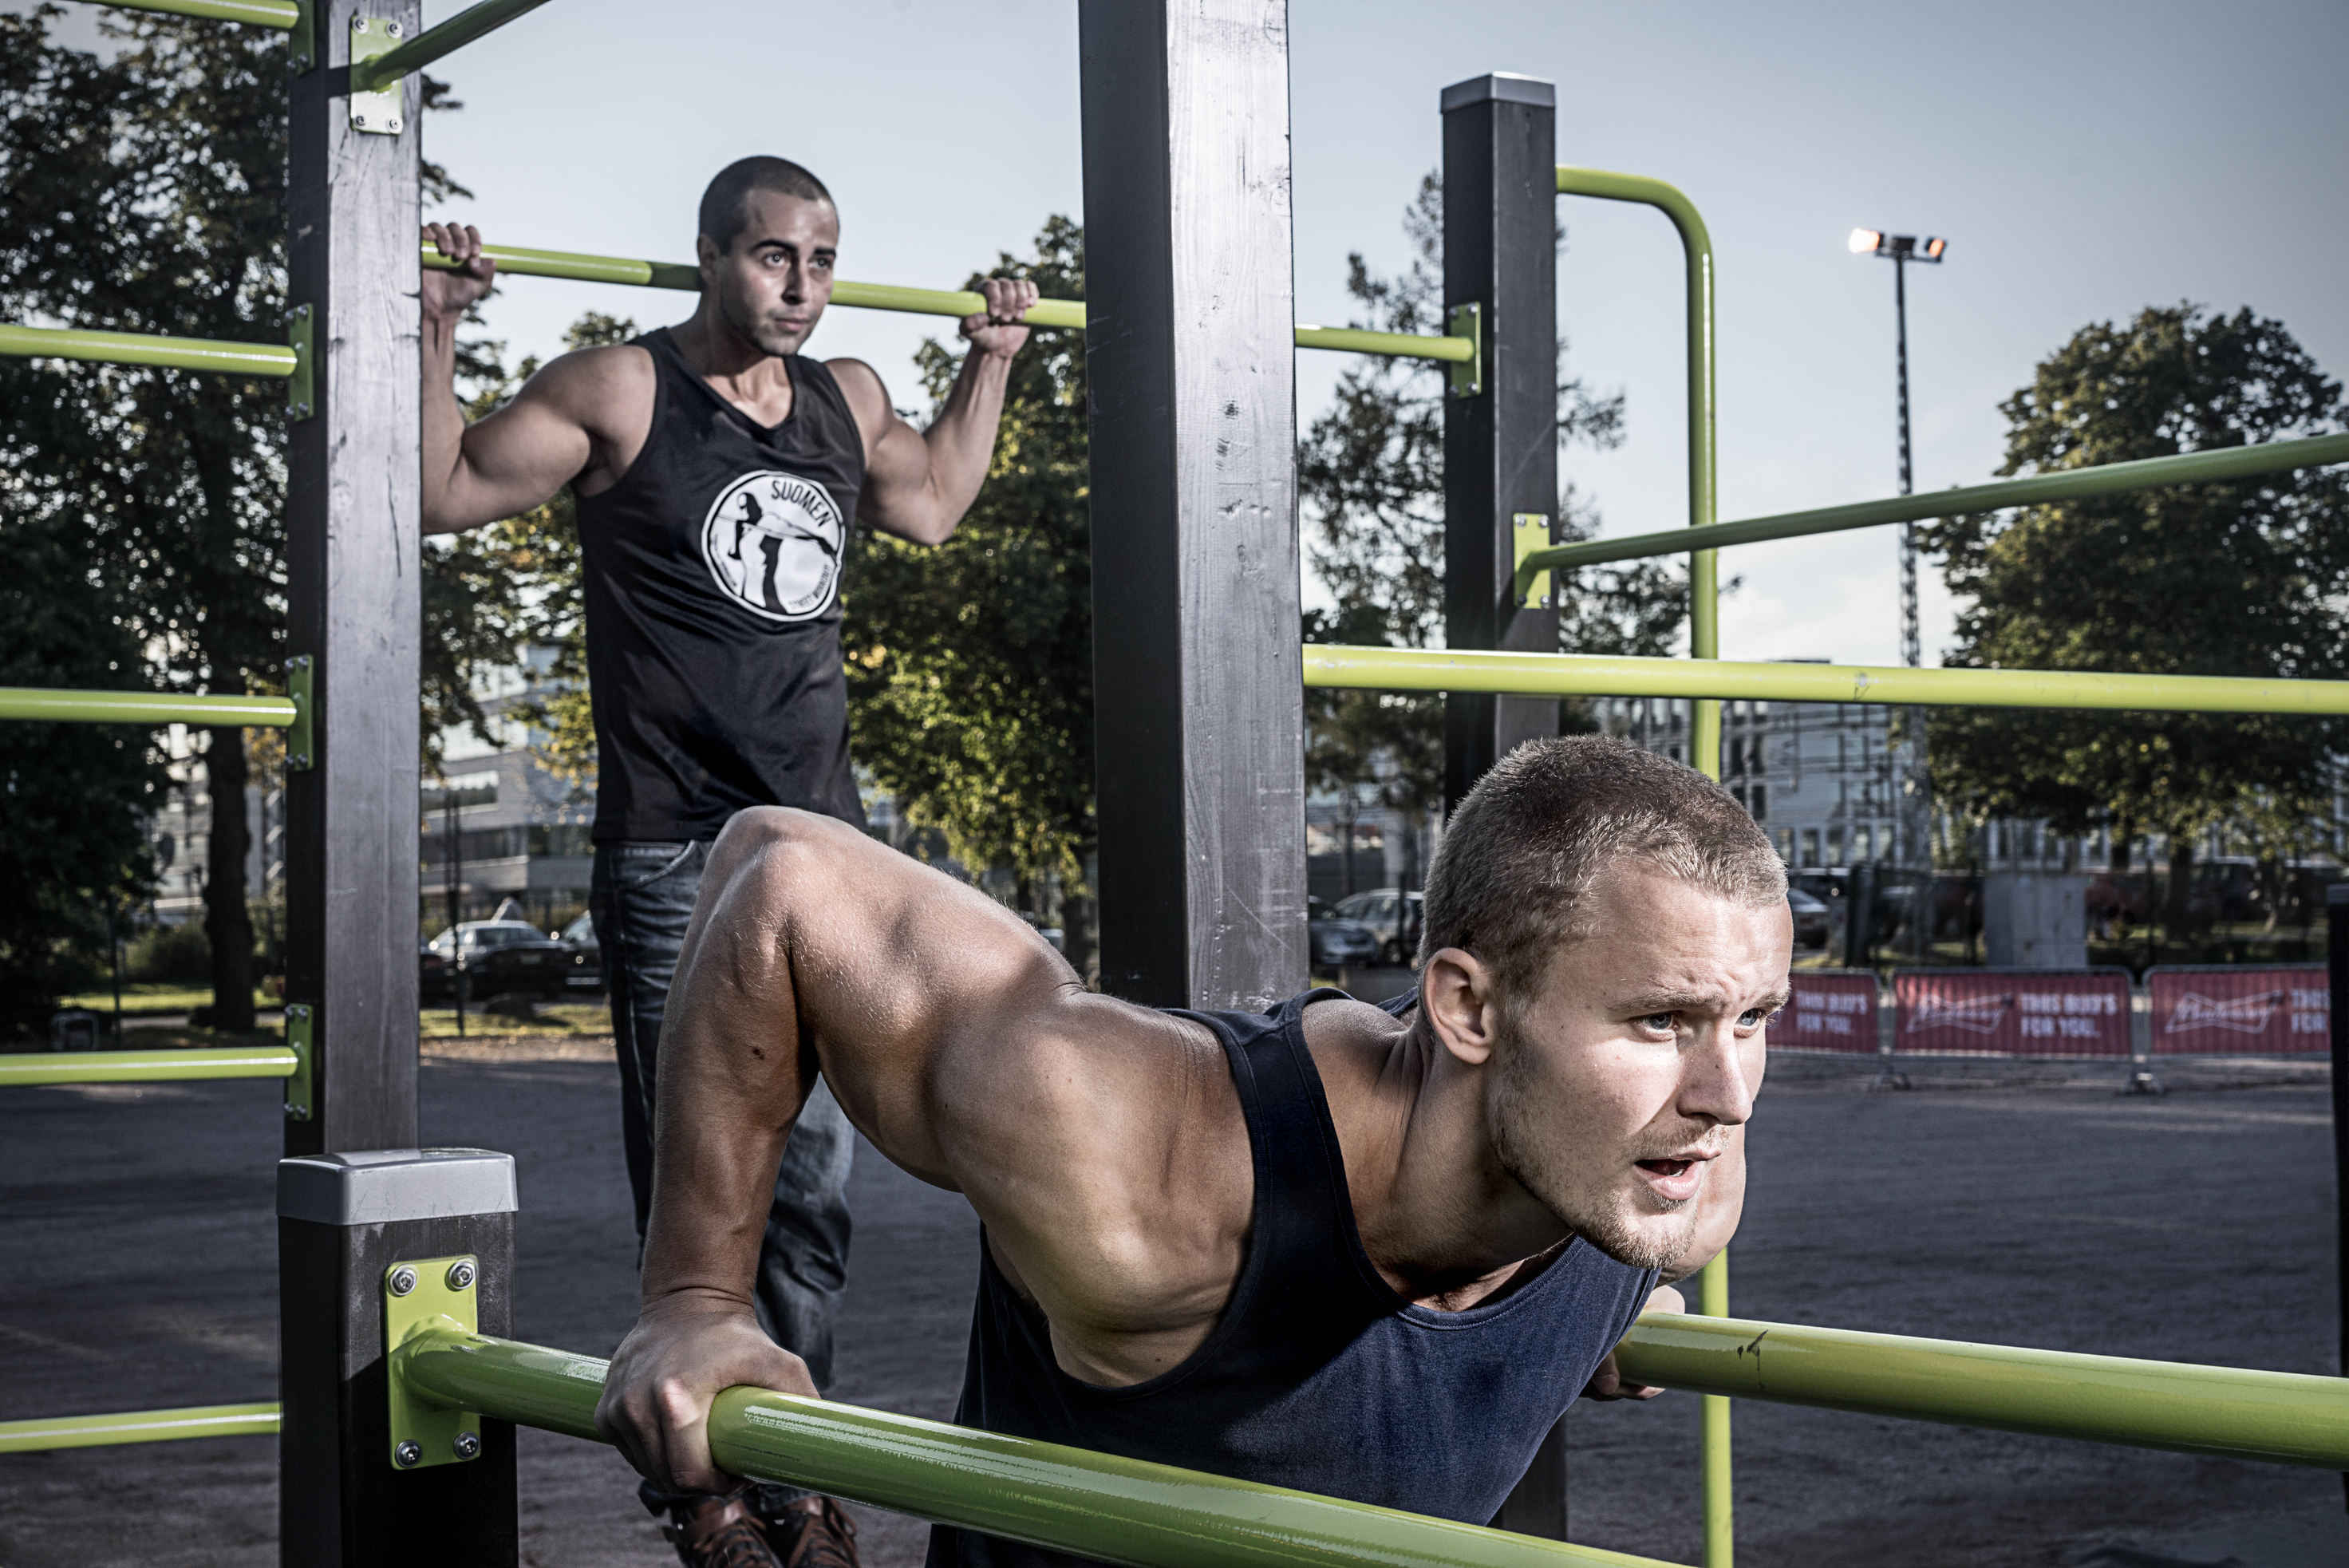 street workout equipment being used